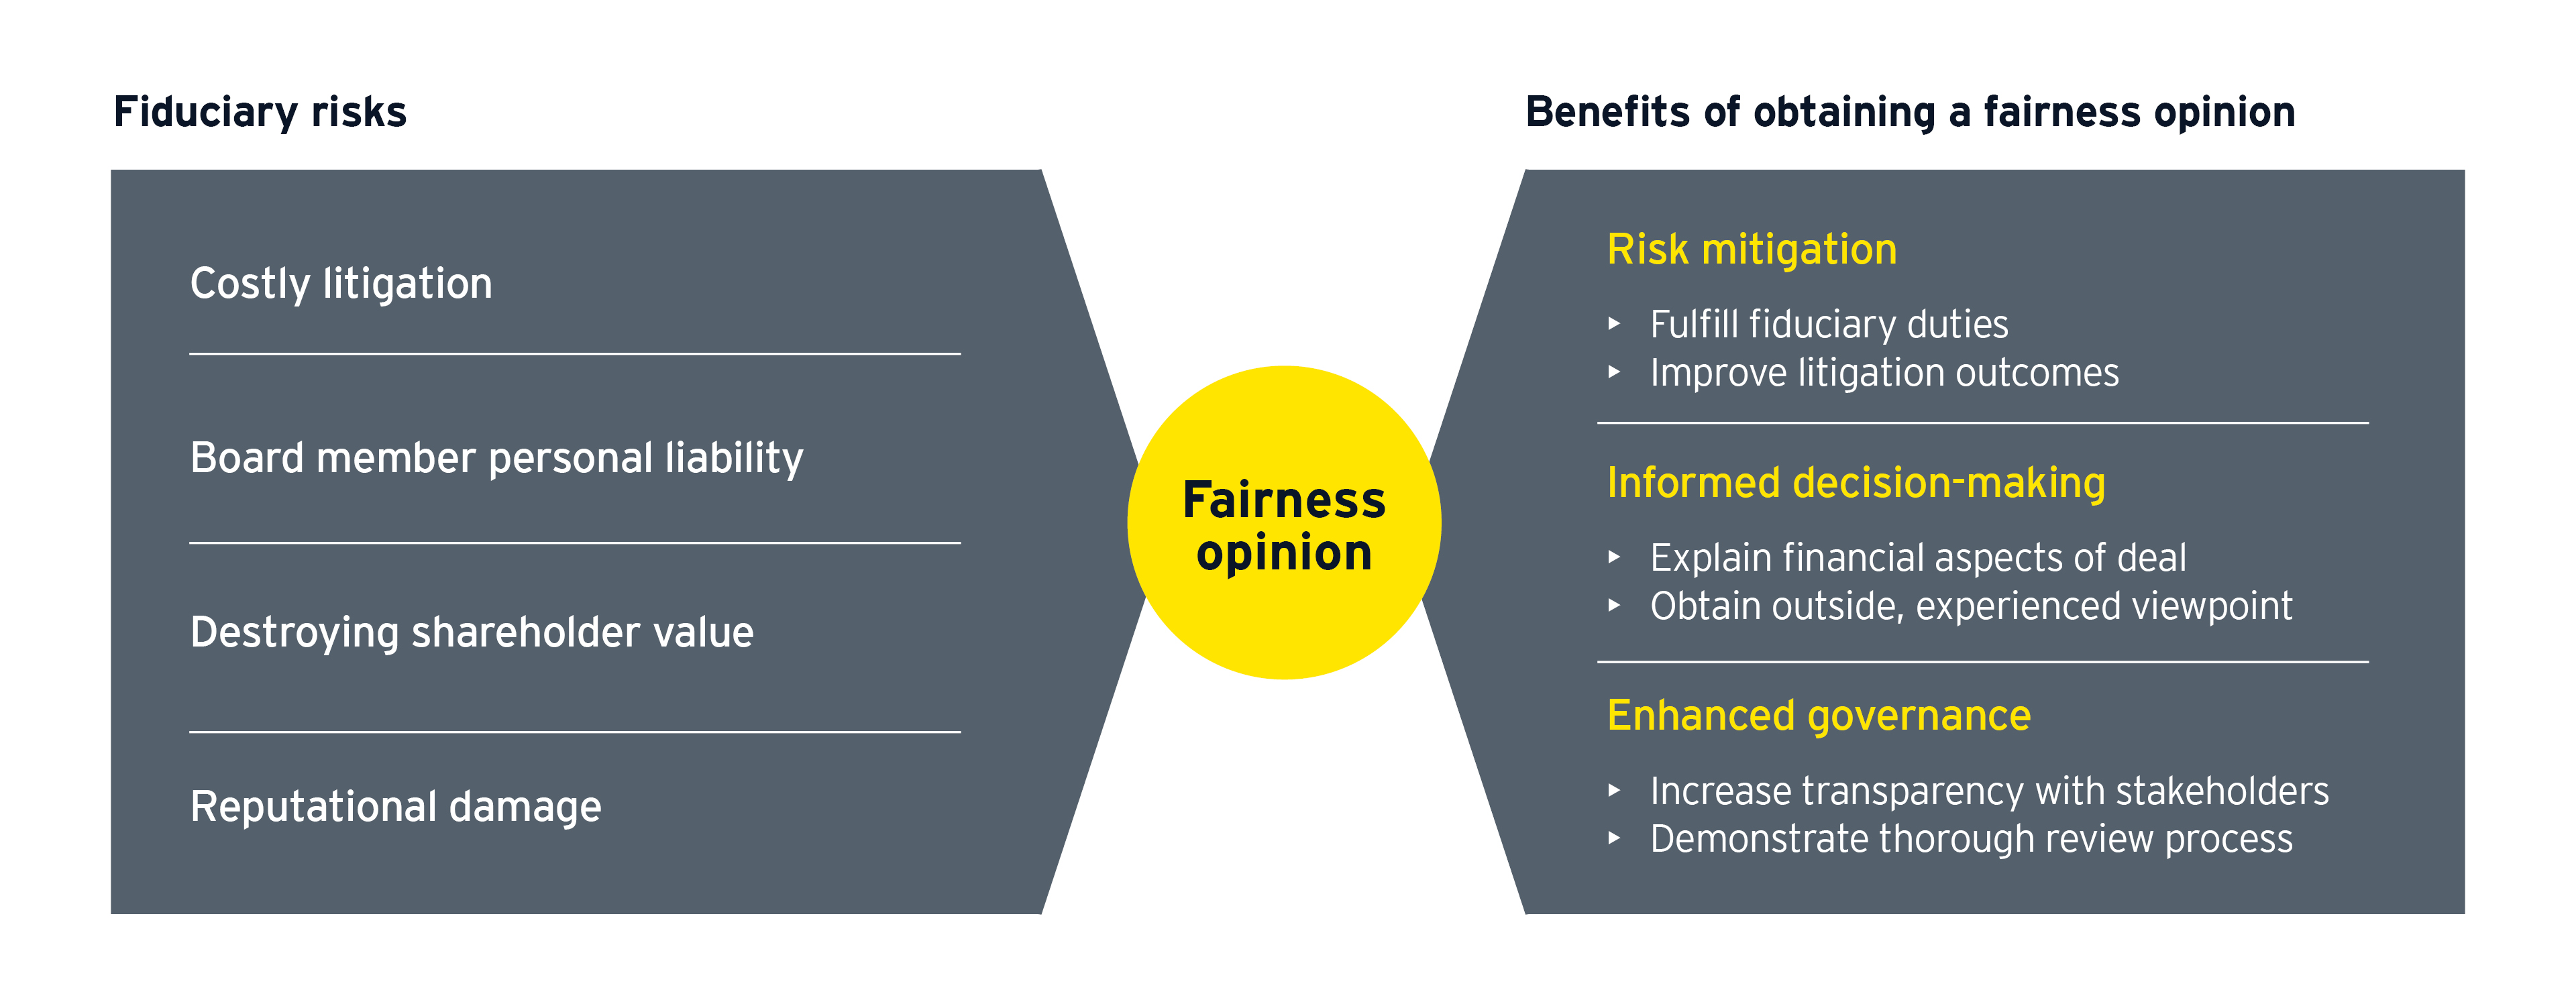 benefits of obtaining fairness opinion